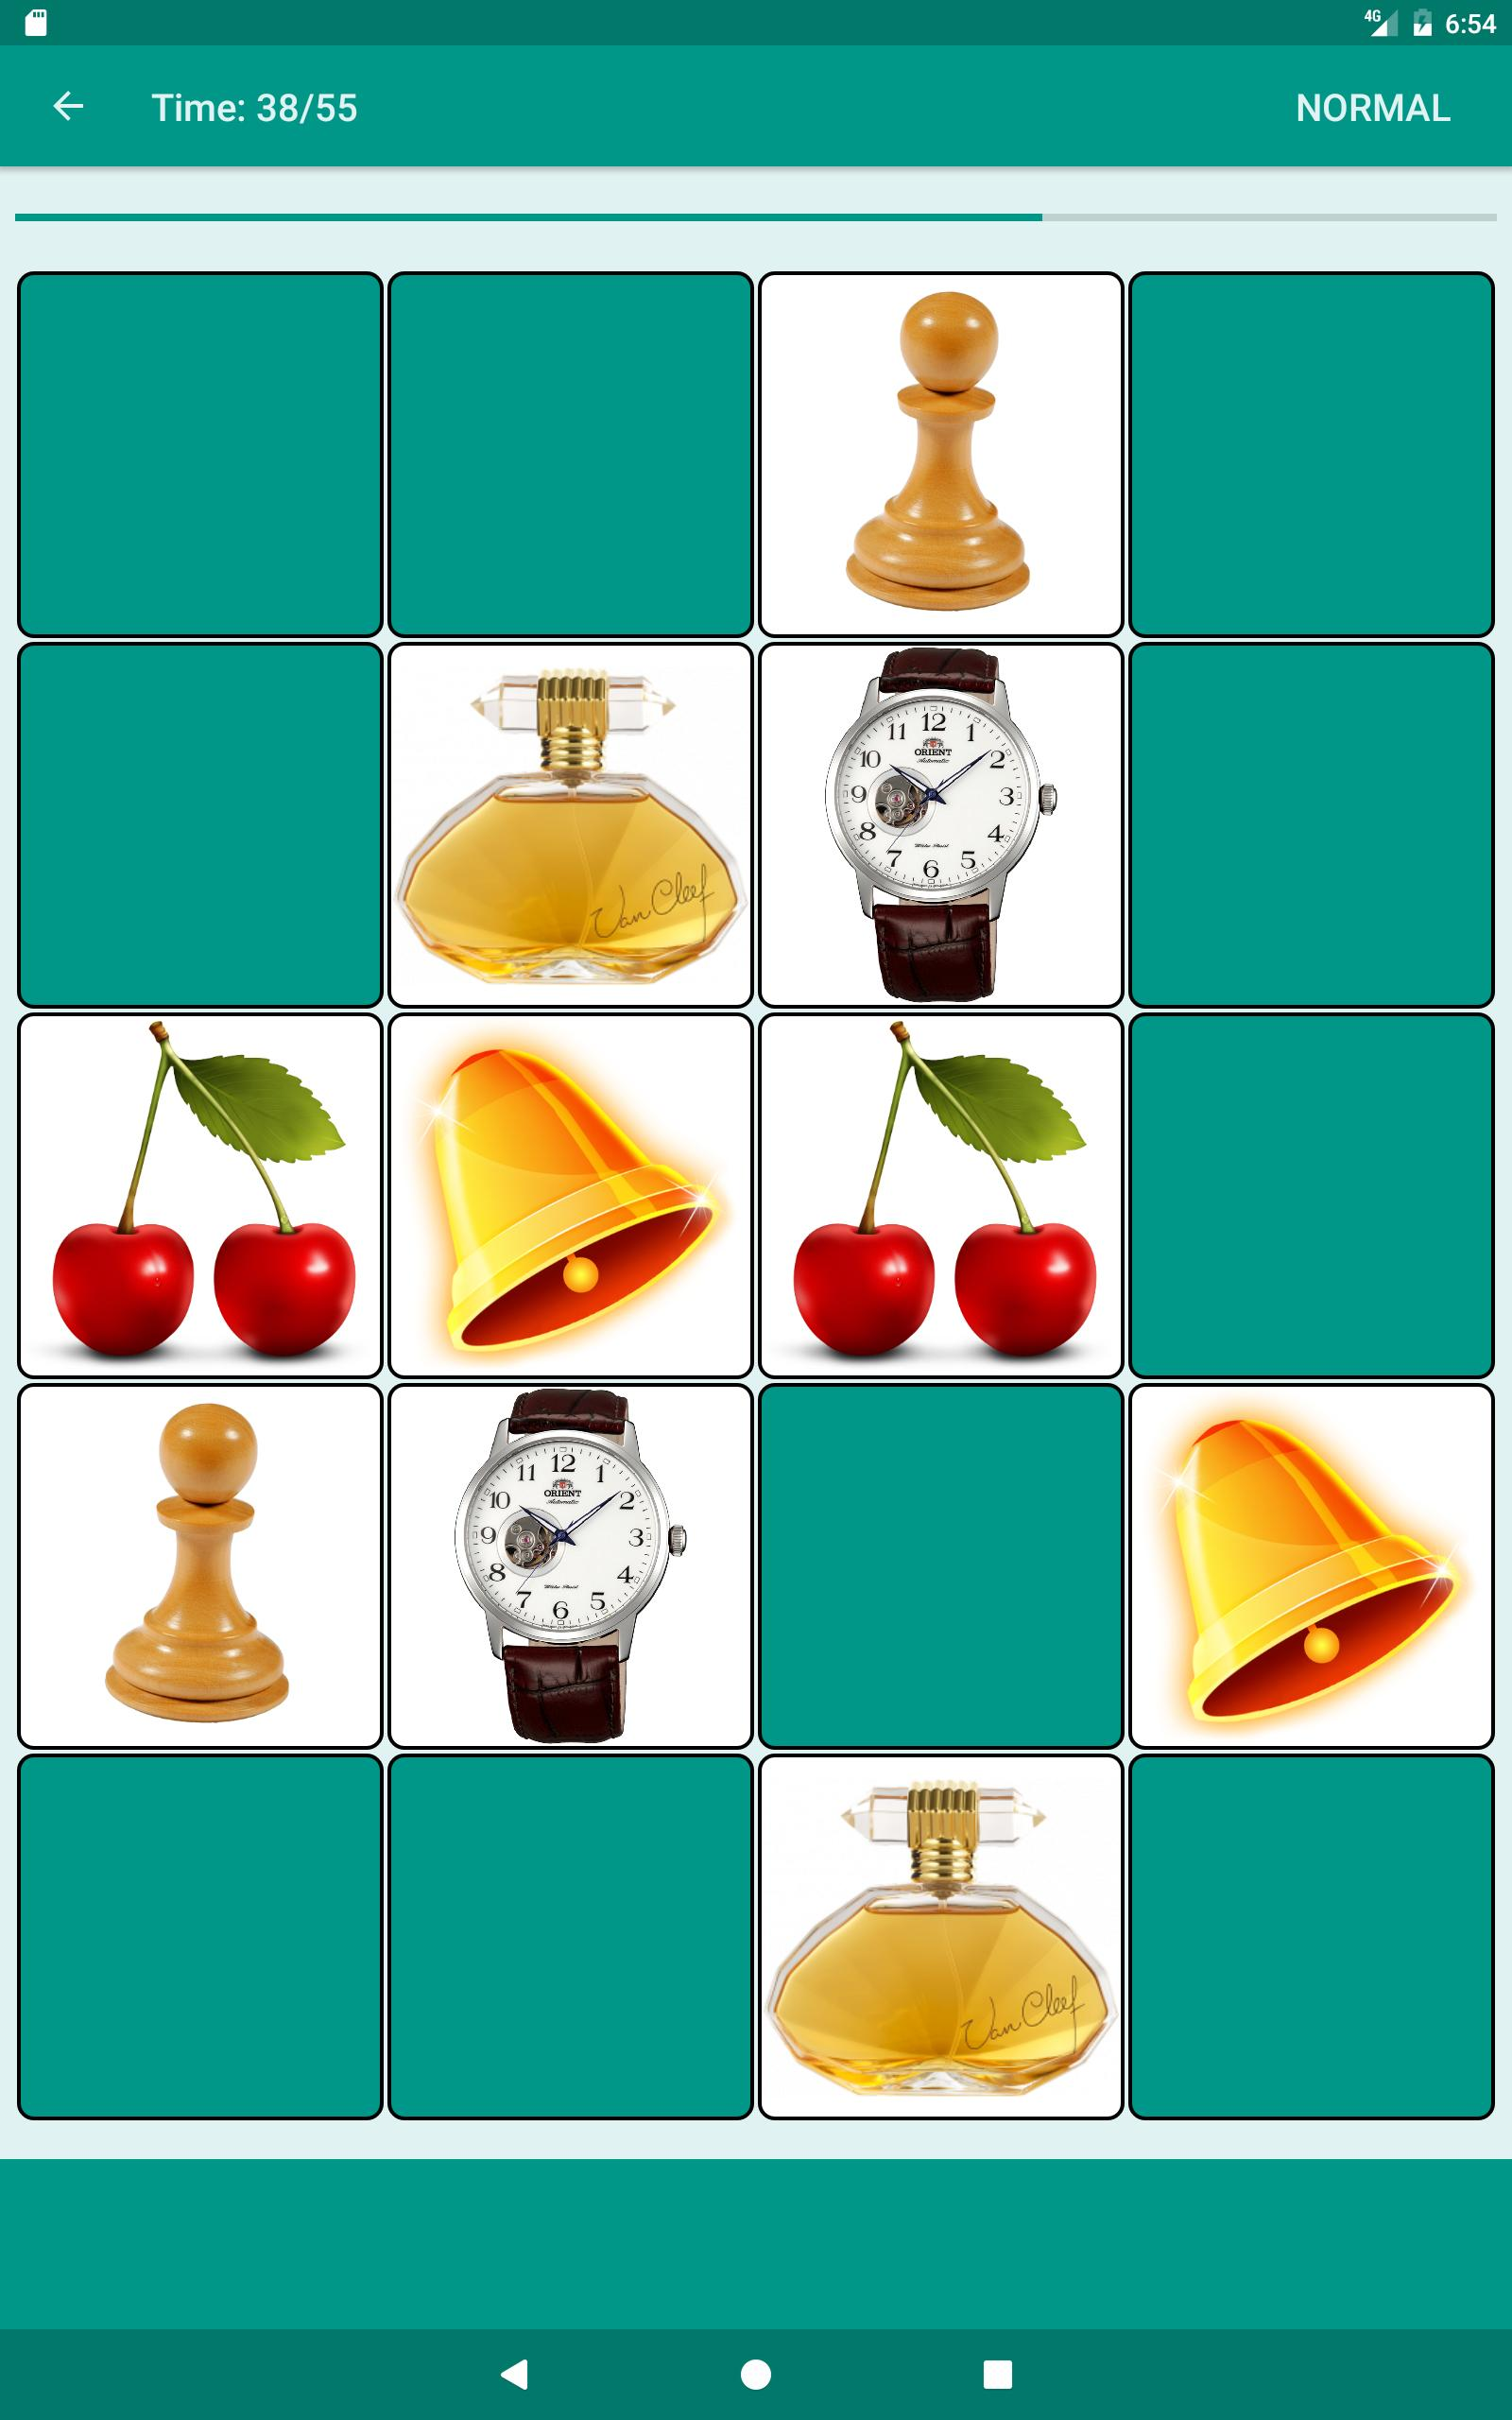 Brain game  Picture Match  for Android - APK Download